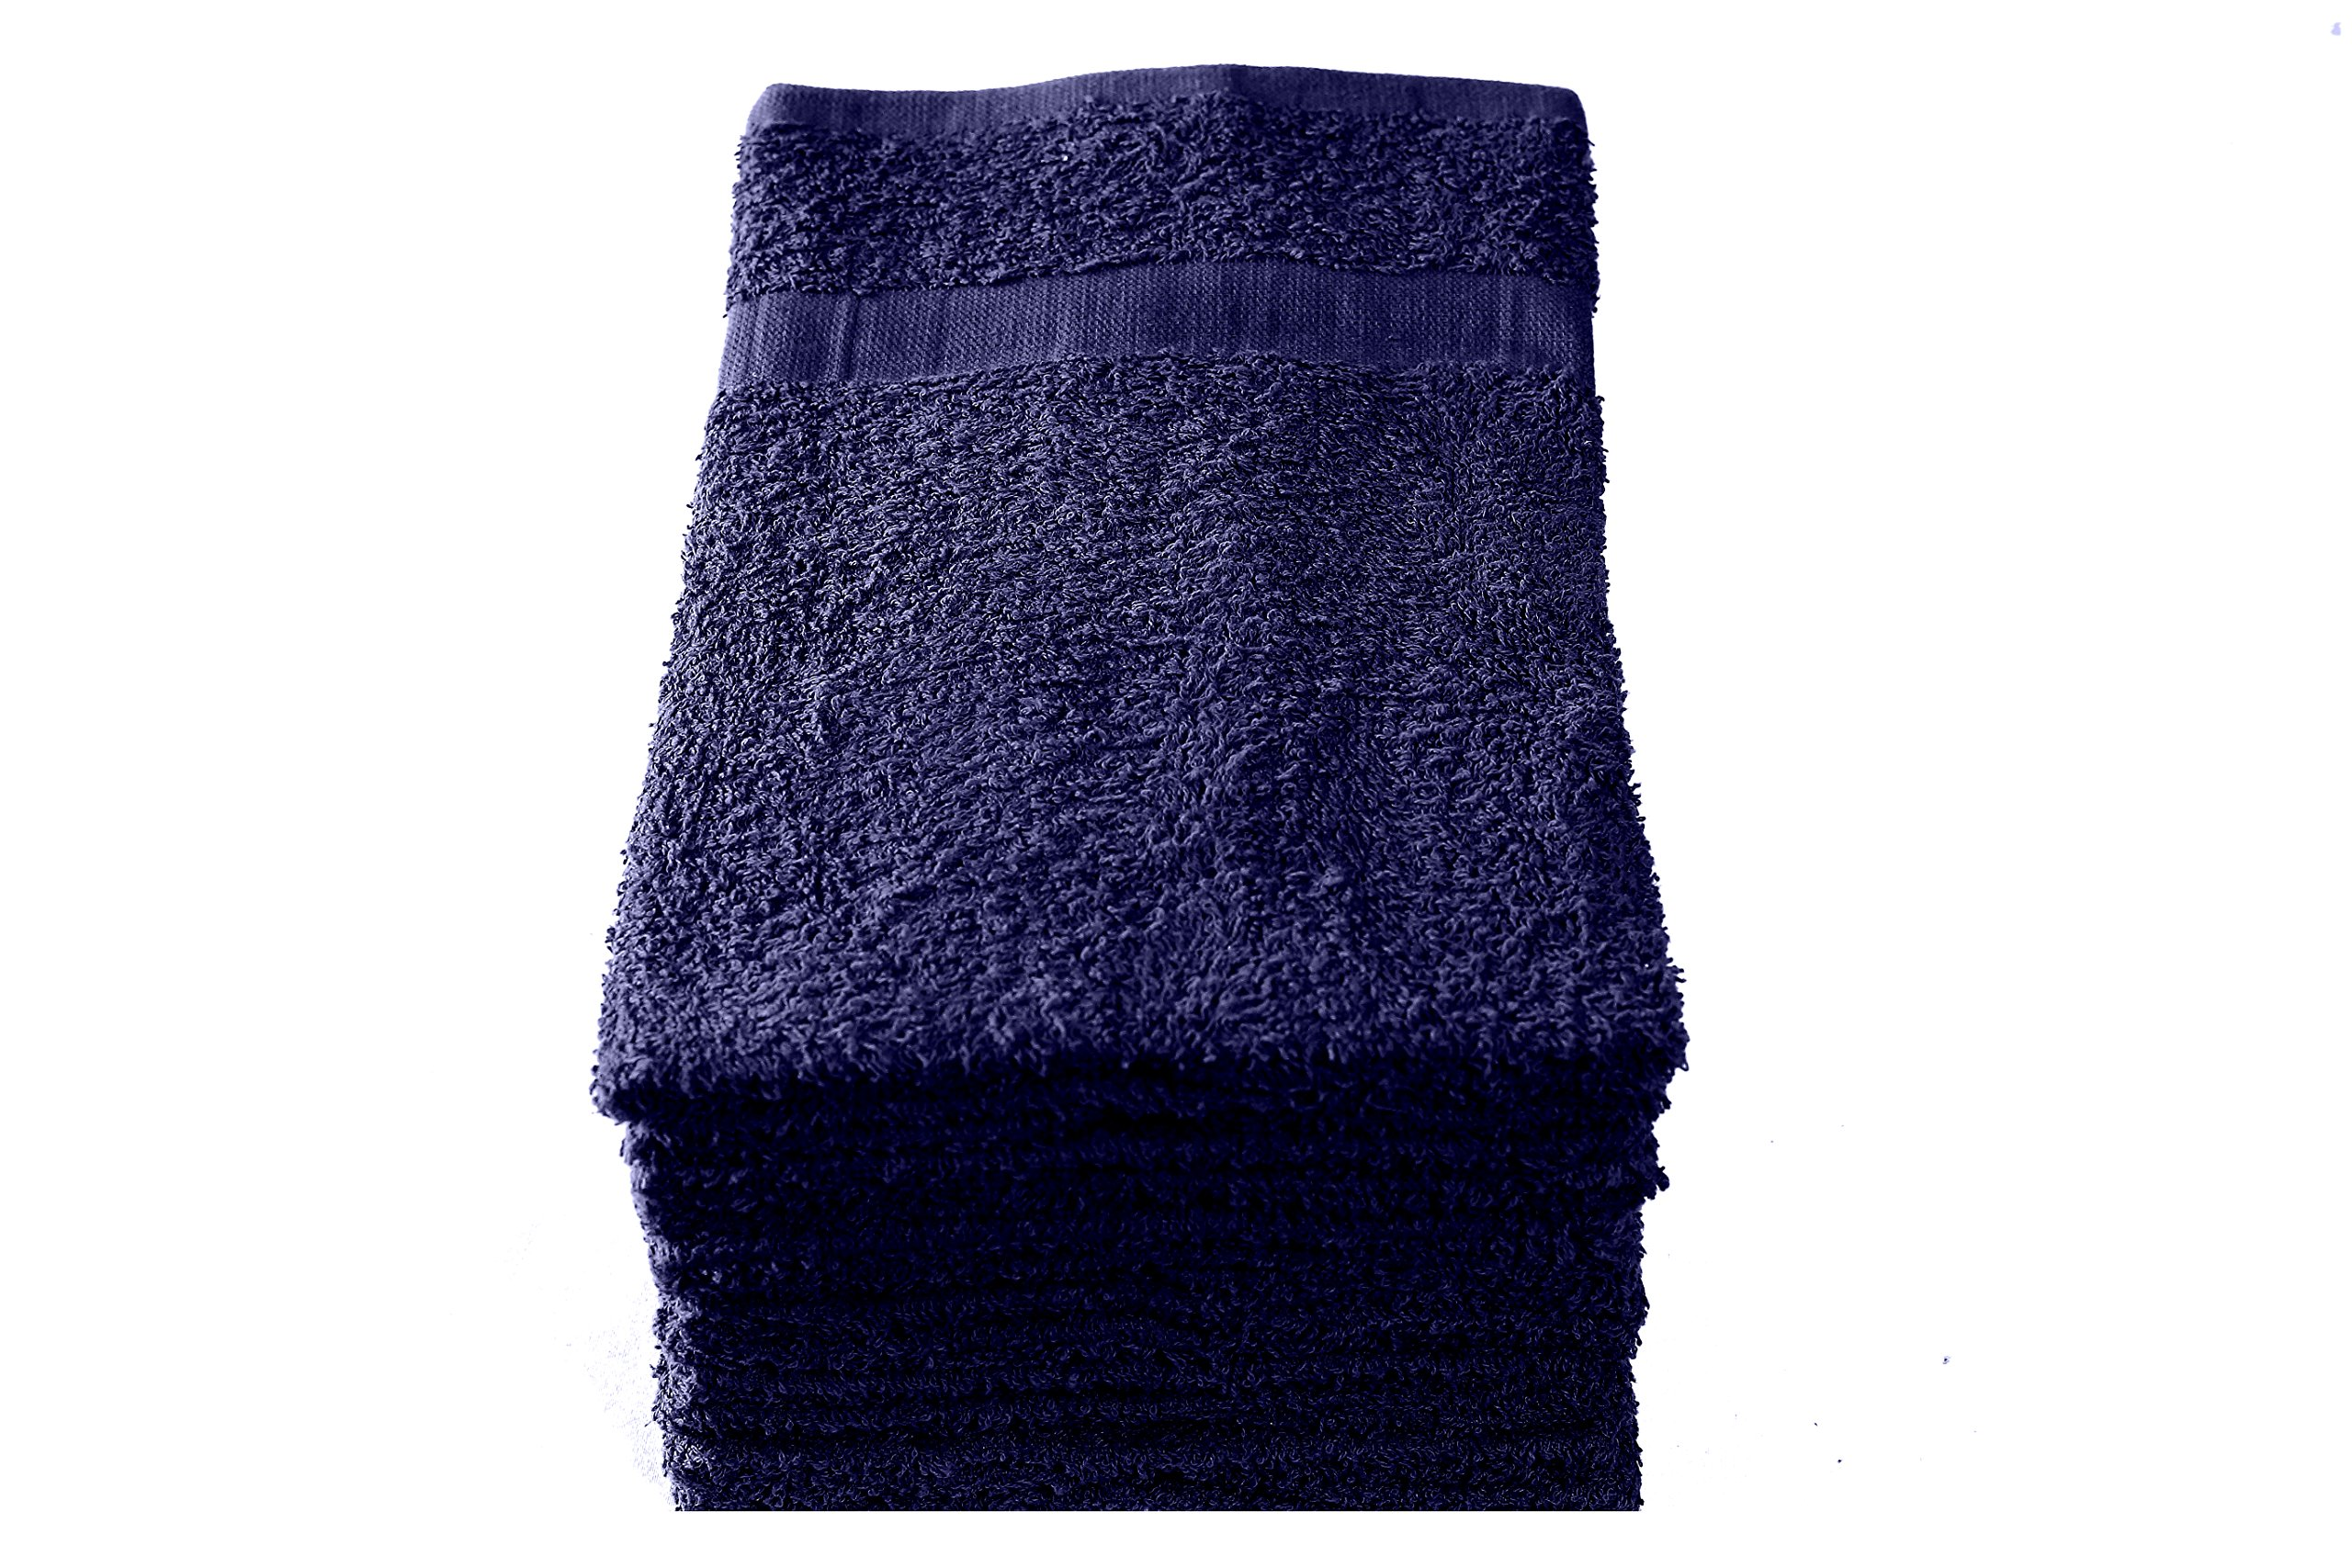 Heritage Linen Cotton Salon Towels - Spa Towels - Gym Towels - Hand Towels (24-Pack, Navy Blue, 15x25 inches) - Ringspun Cotton, Soft & Absorbent, Quick Dry by